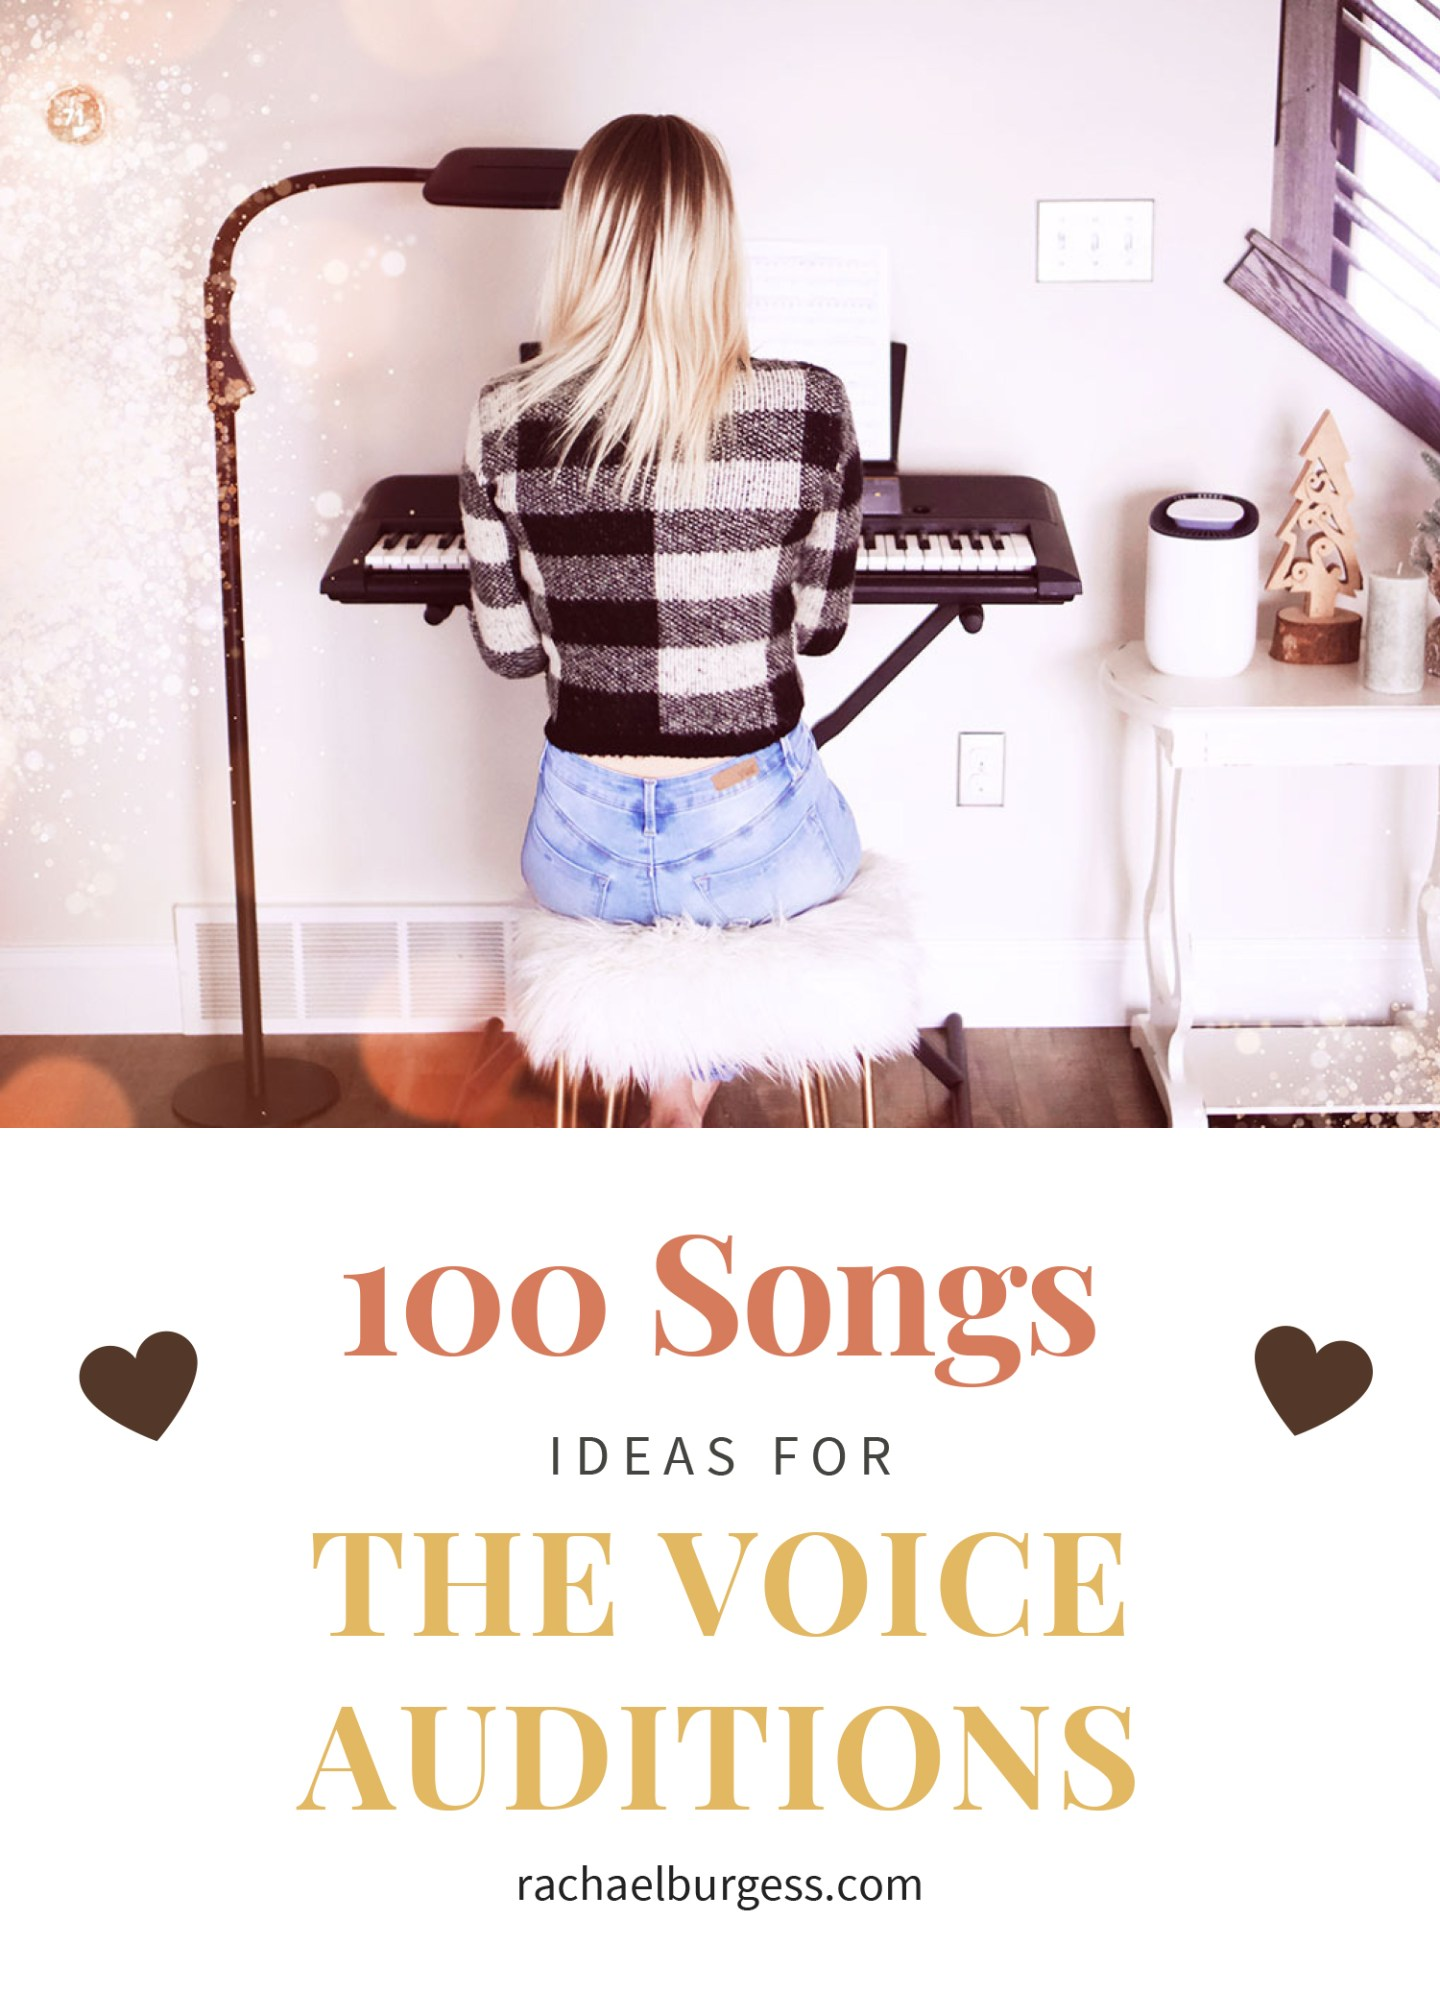 100 Audition Song Ideas For The Voice, X Factor or Ameircan Idol | Rach